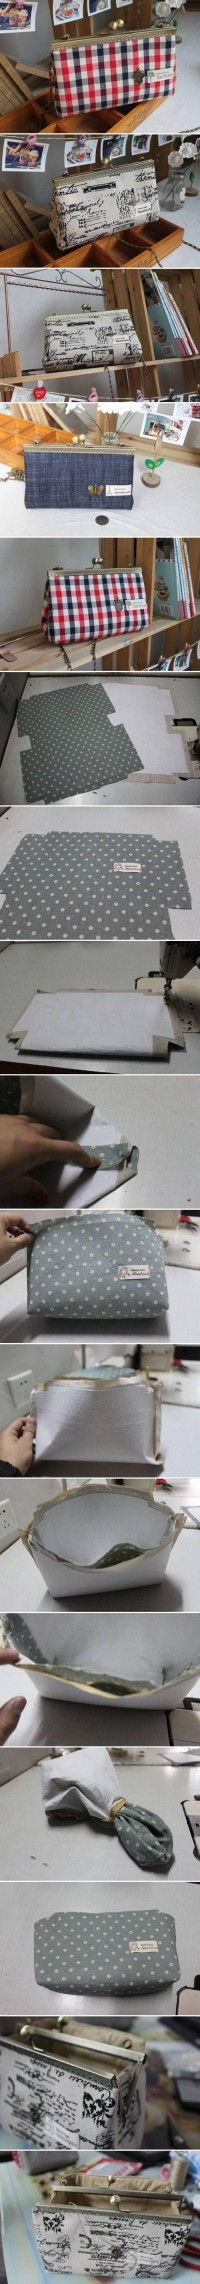 DIY Simple Handbag DIY Projects | UsefulDIY.com